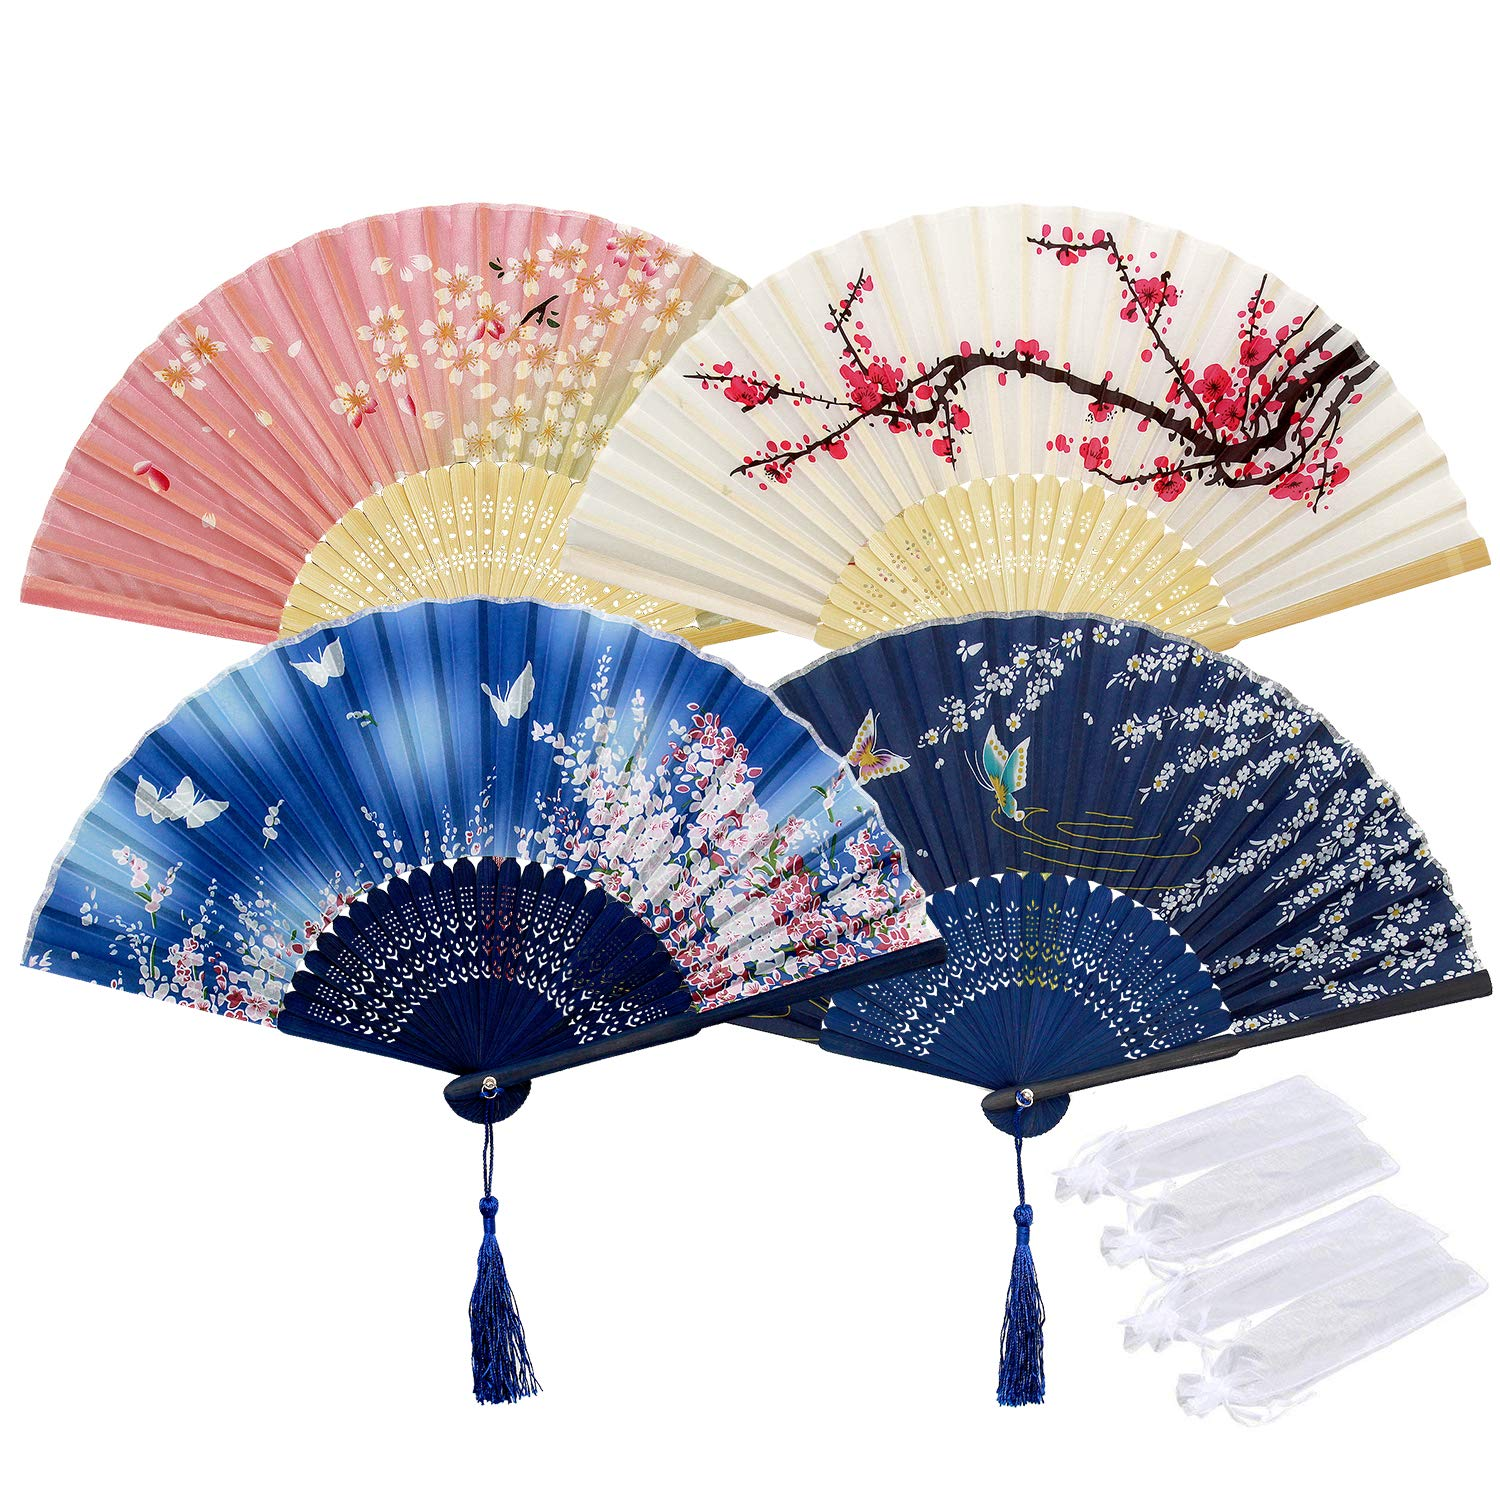 4pcs Folding Fans, Rorchio Hanheld Silk Bamboo Fans Hand Held Fan with Tassle and Organza Bags for Wedding Party Home Wall Decoration Dancing Cooling